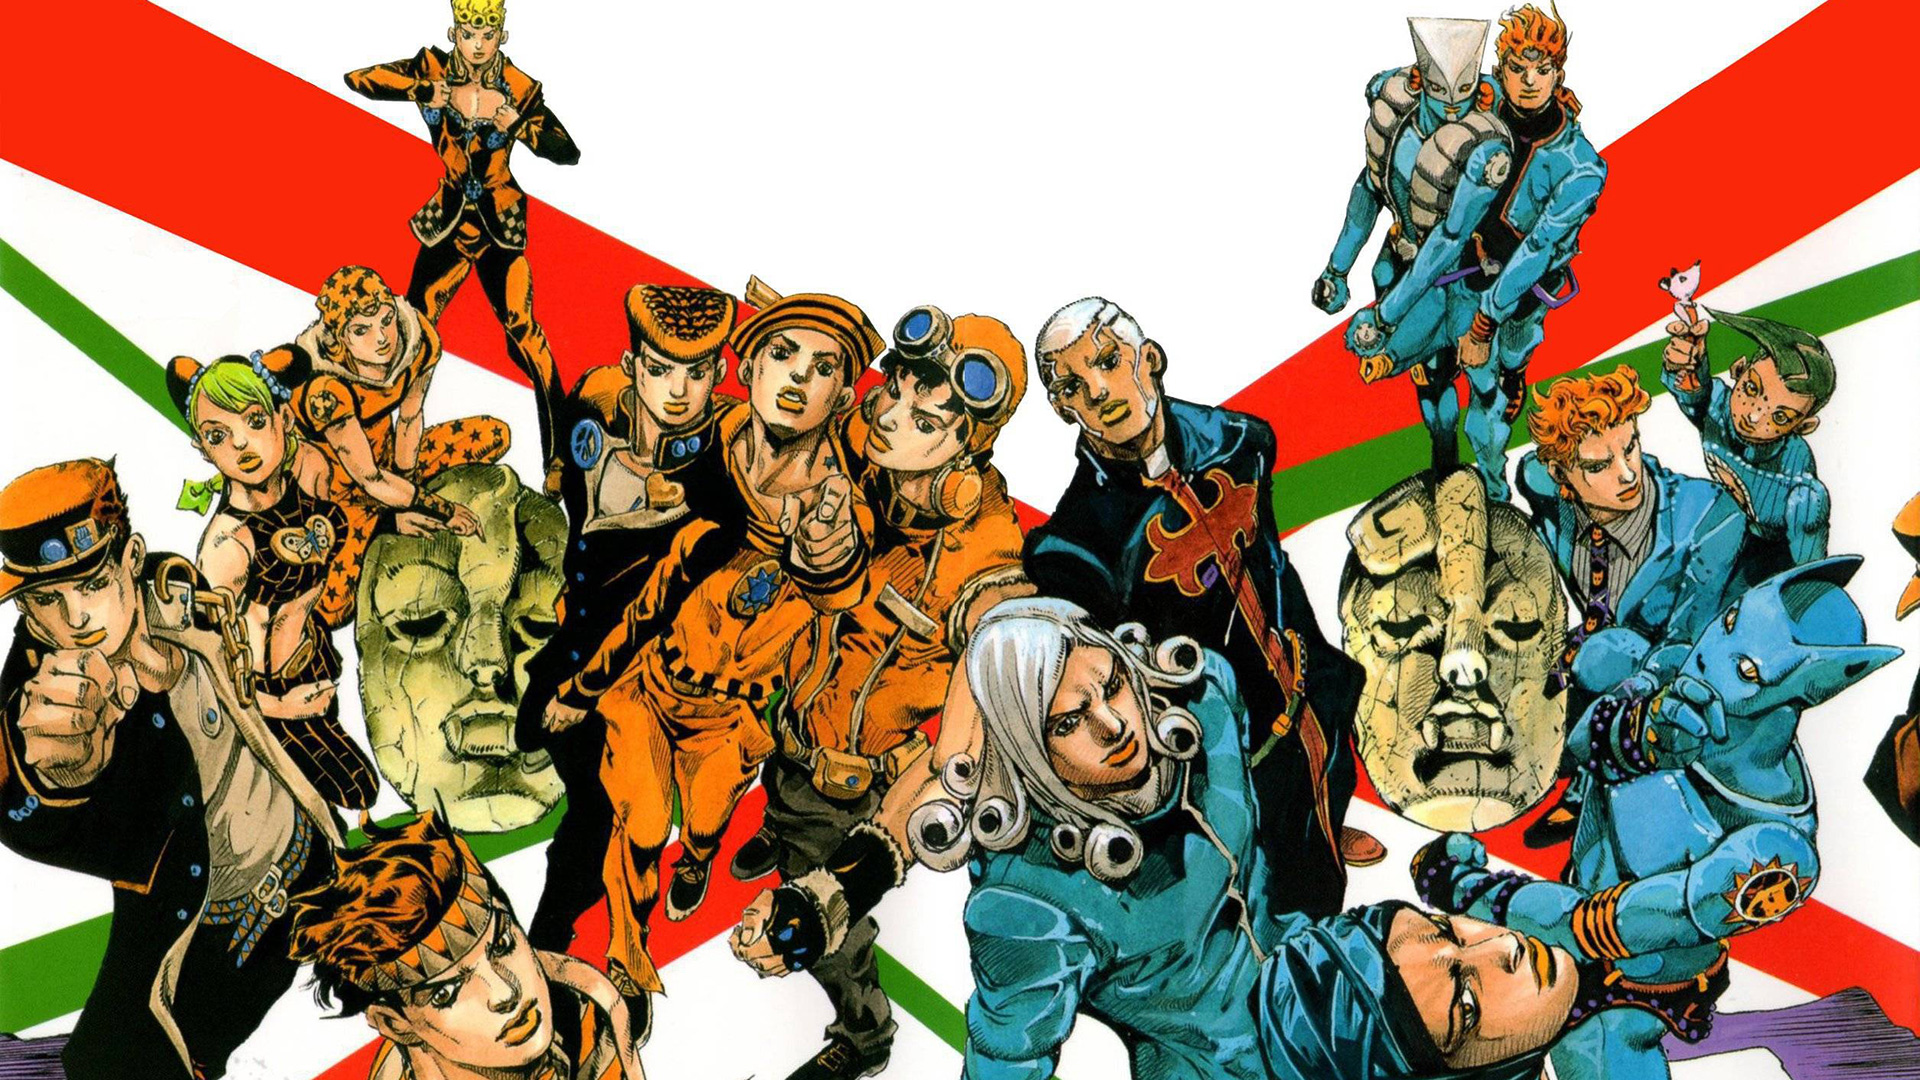 52 Killer Queen (Jojo's Bizarre Adventure) HD Wallpapers